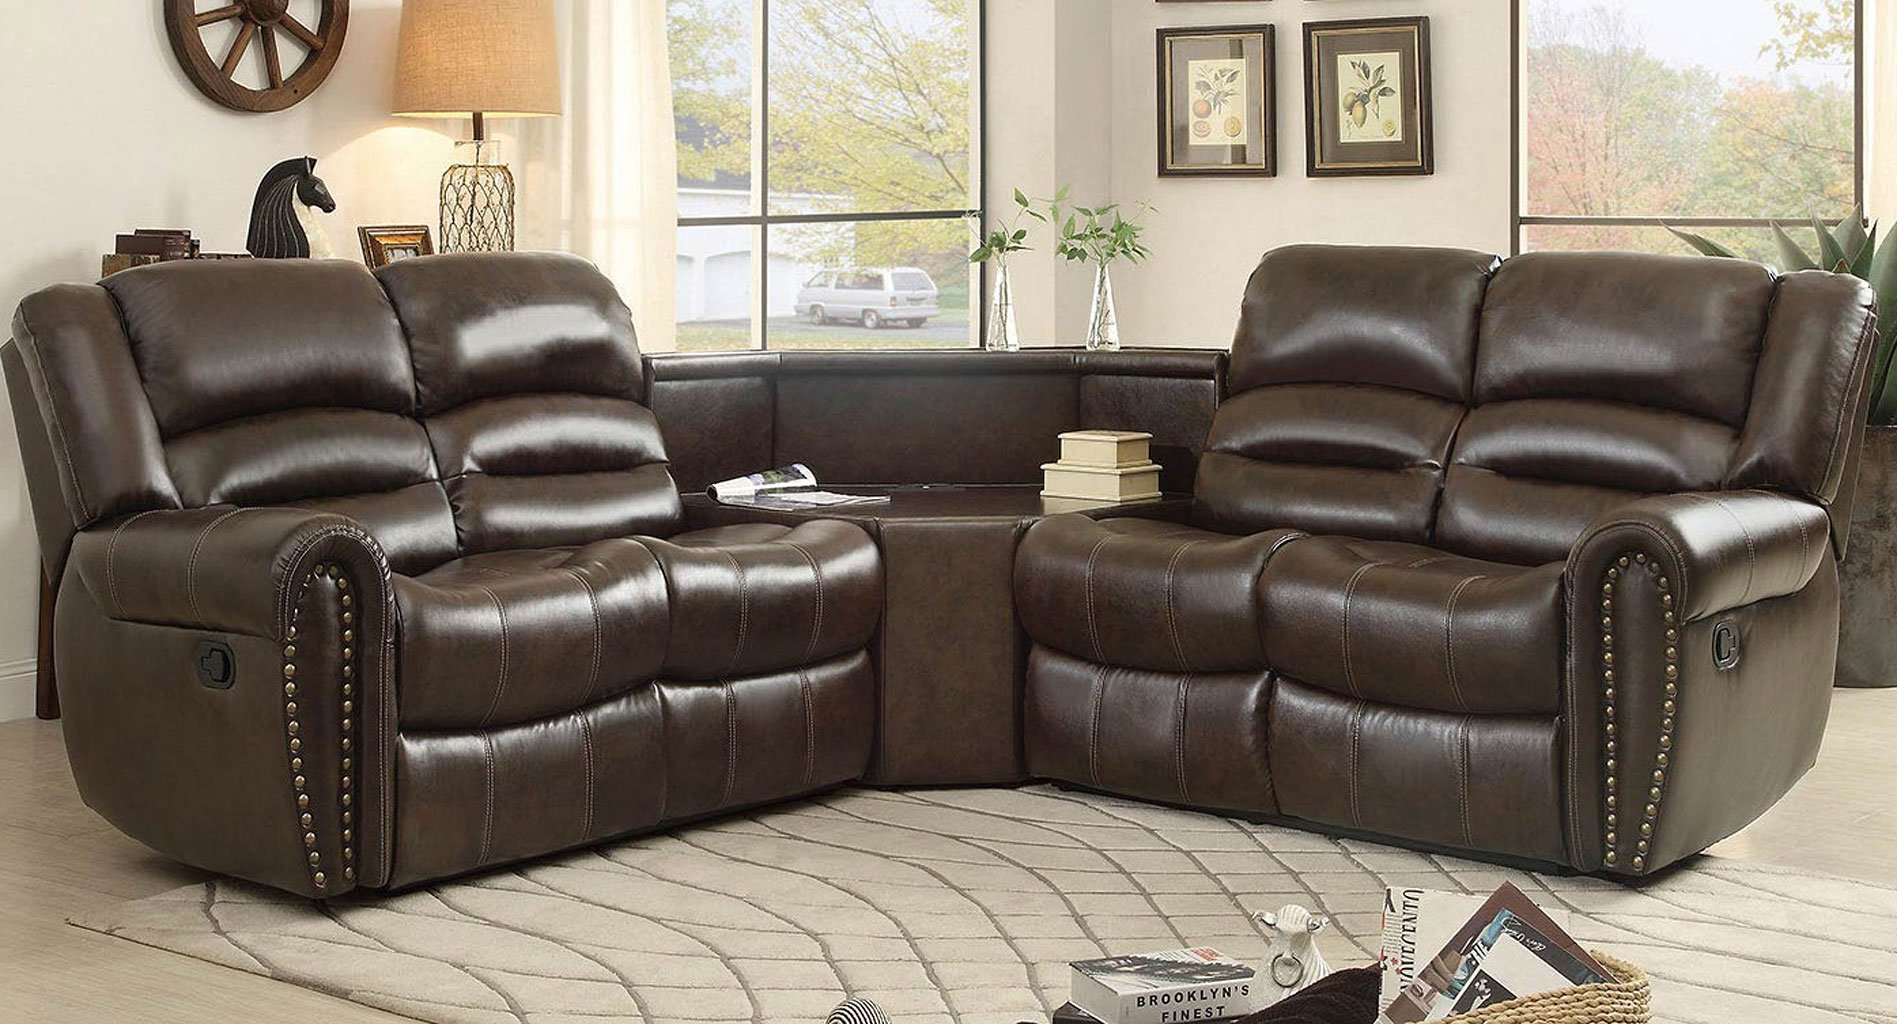 palmyra modular reclining sectional w table wedge sectionals living room furniture living. Black Bedroom Furniture Sets. Home Design Ideas